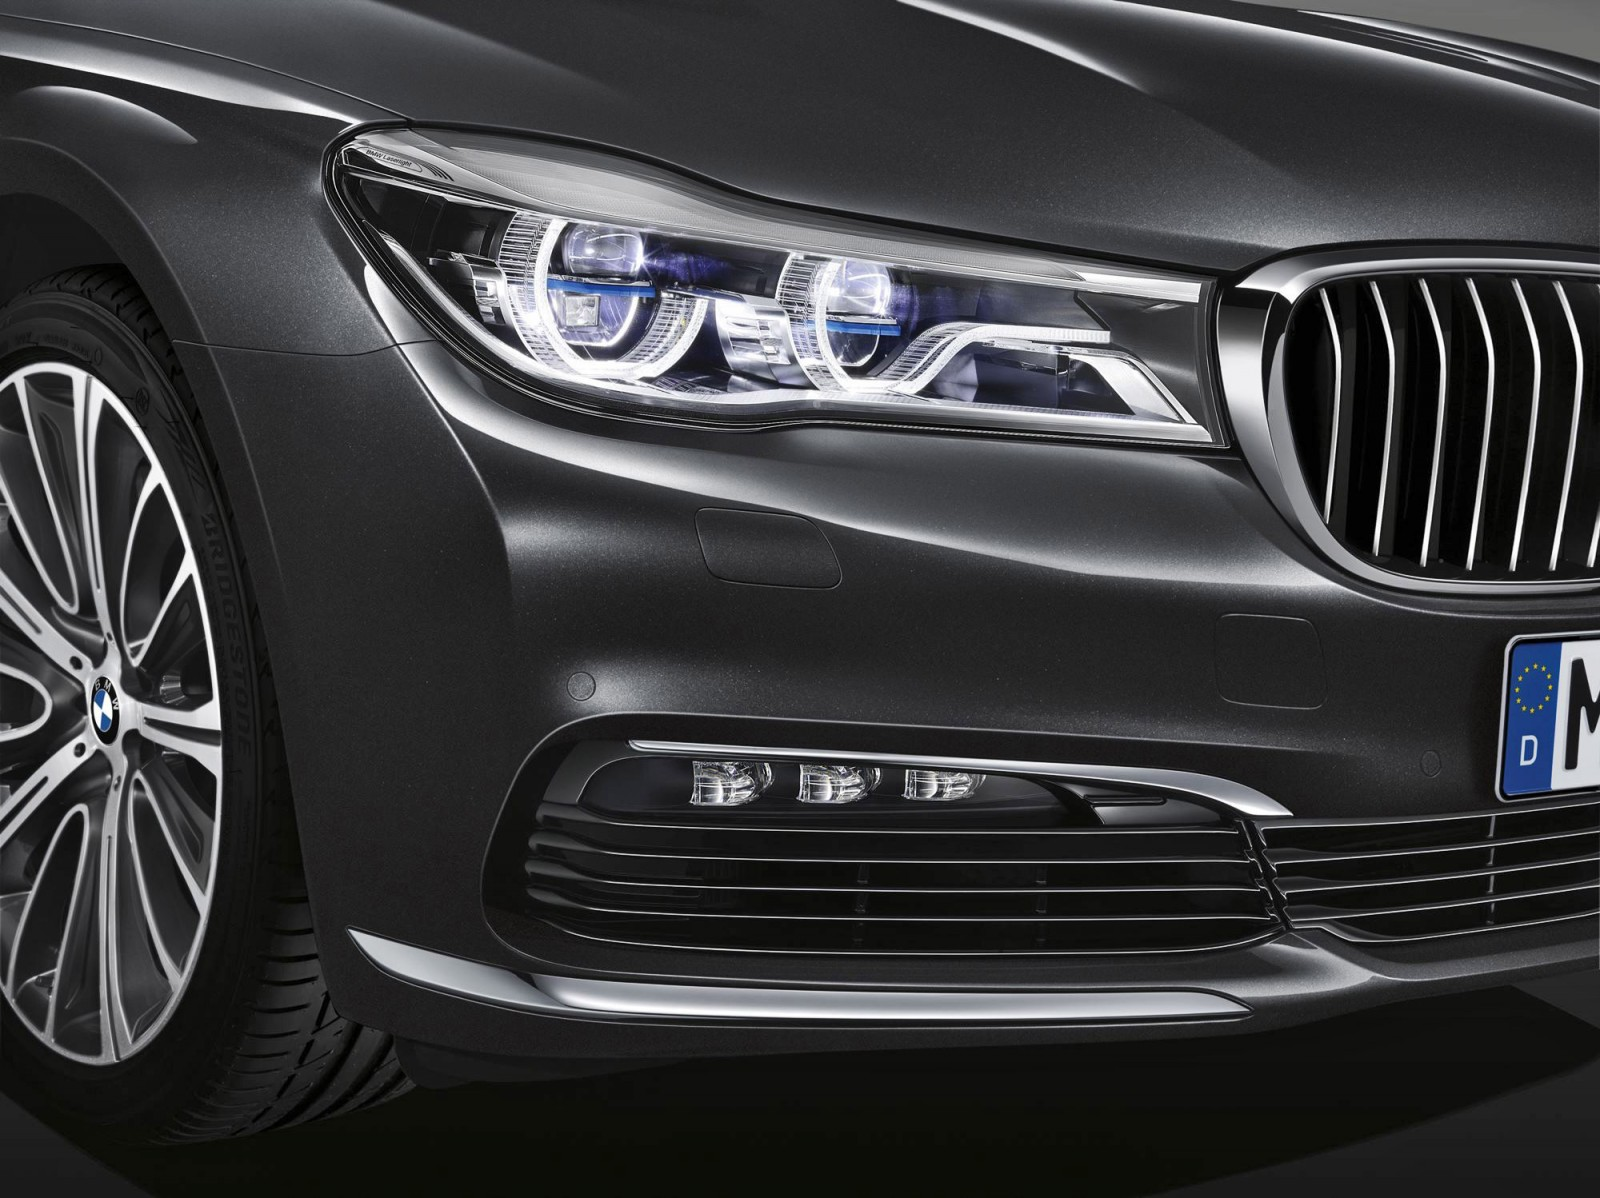 2016 BMW 750 Exterior Photos 48